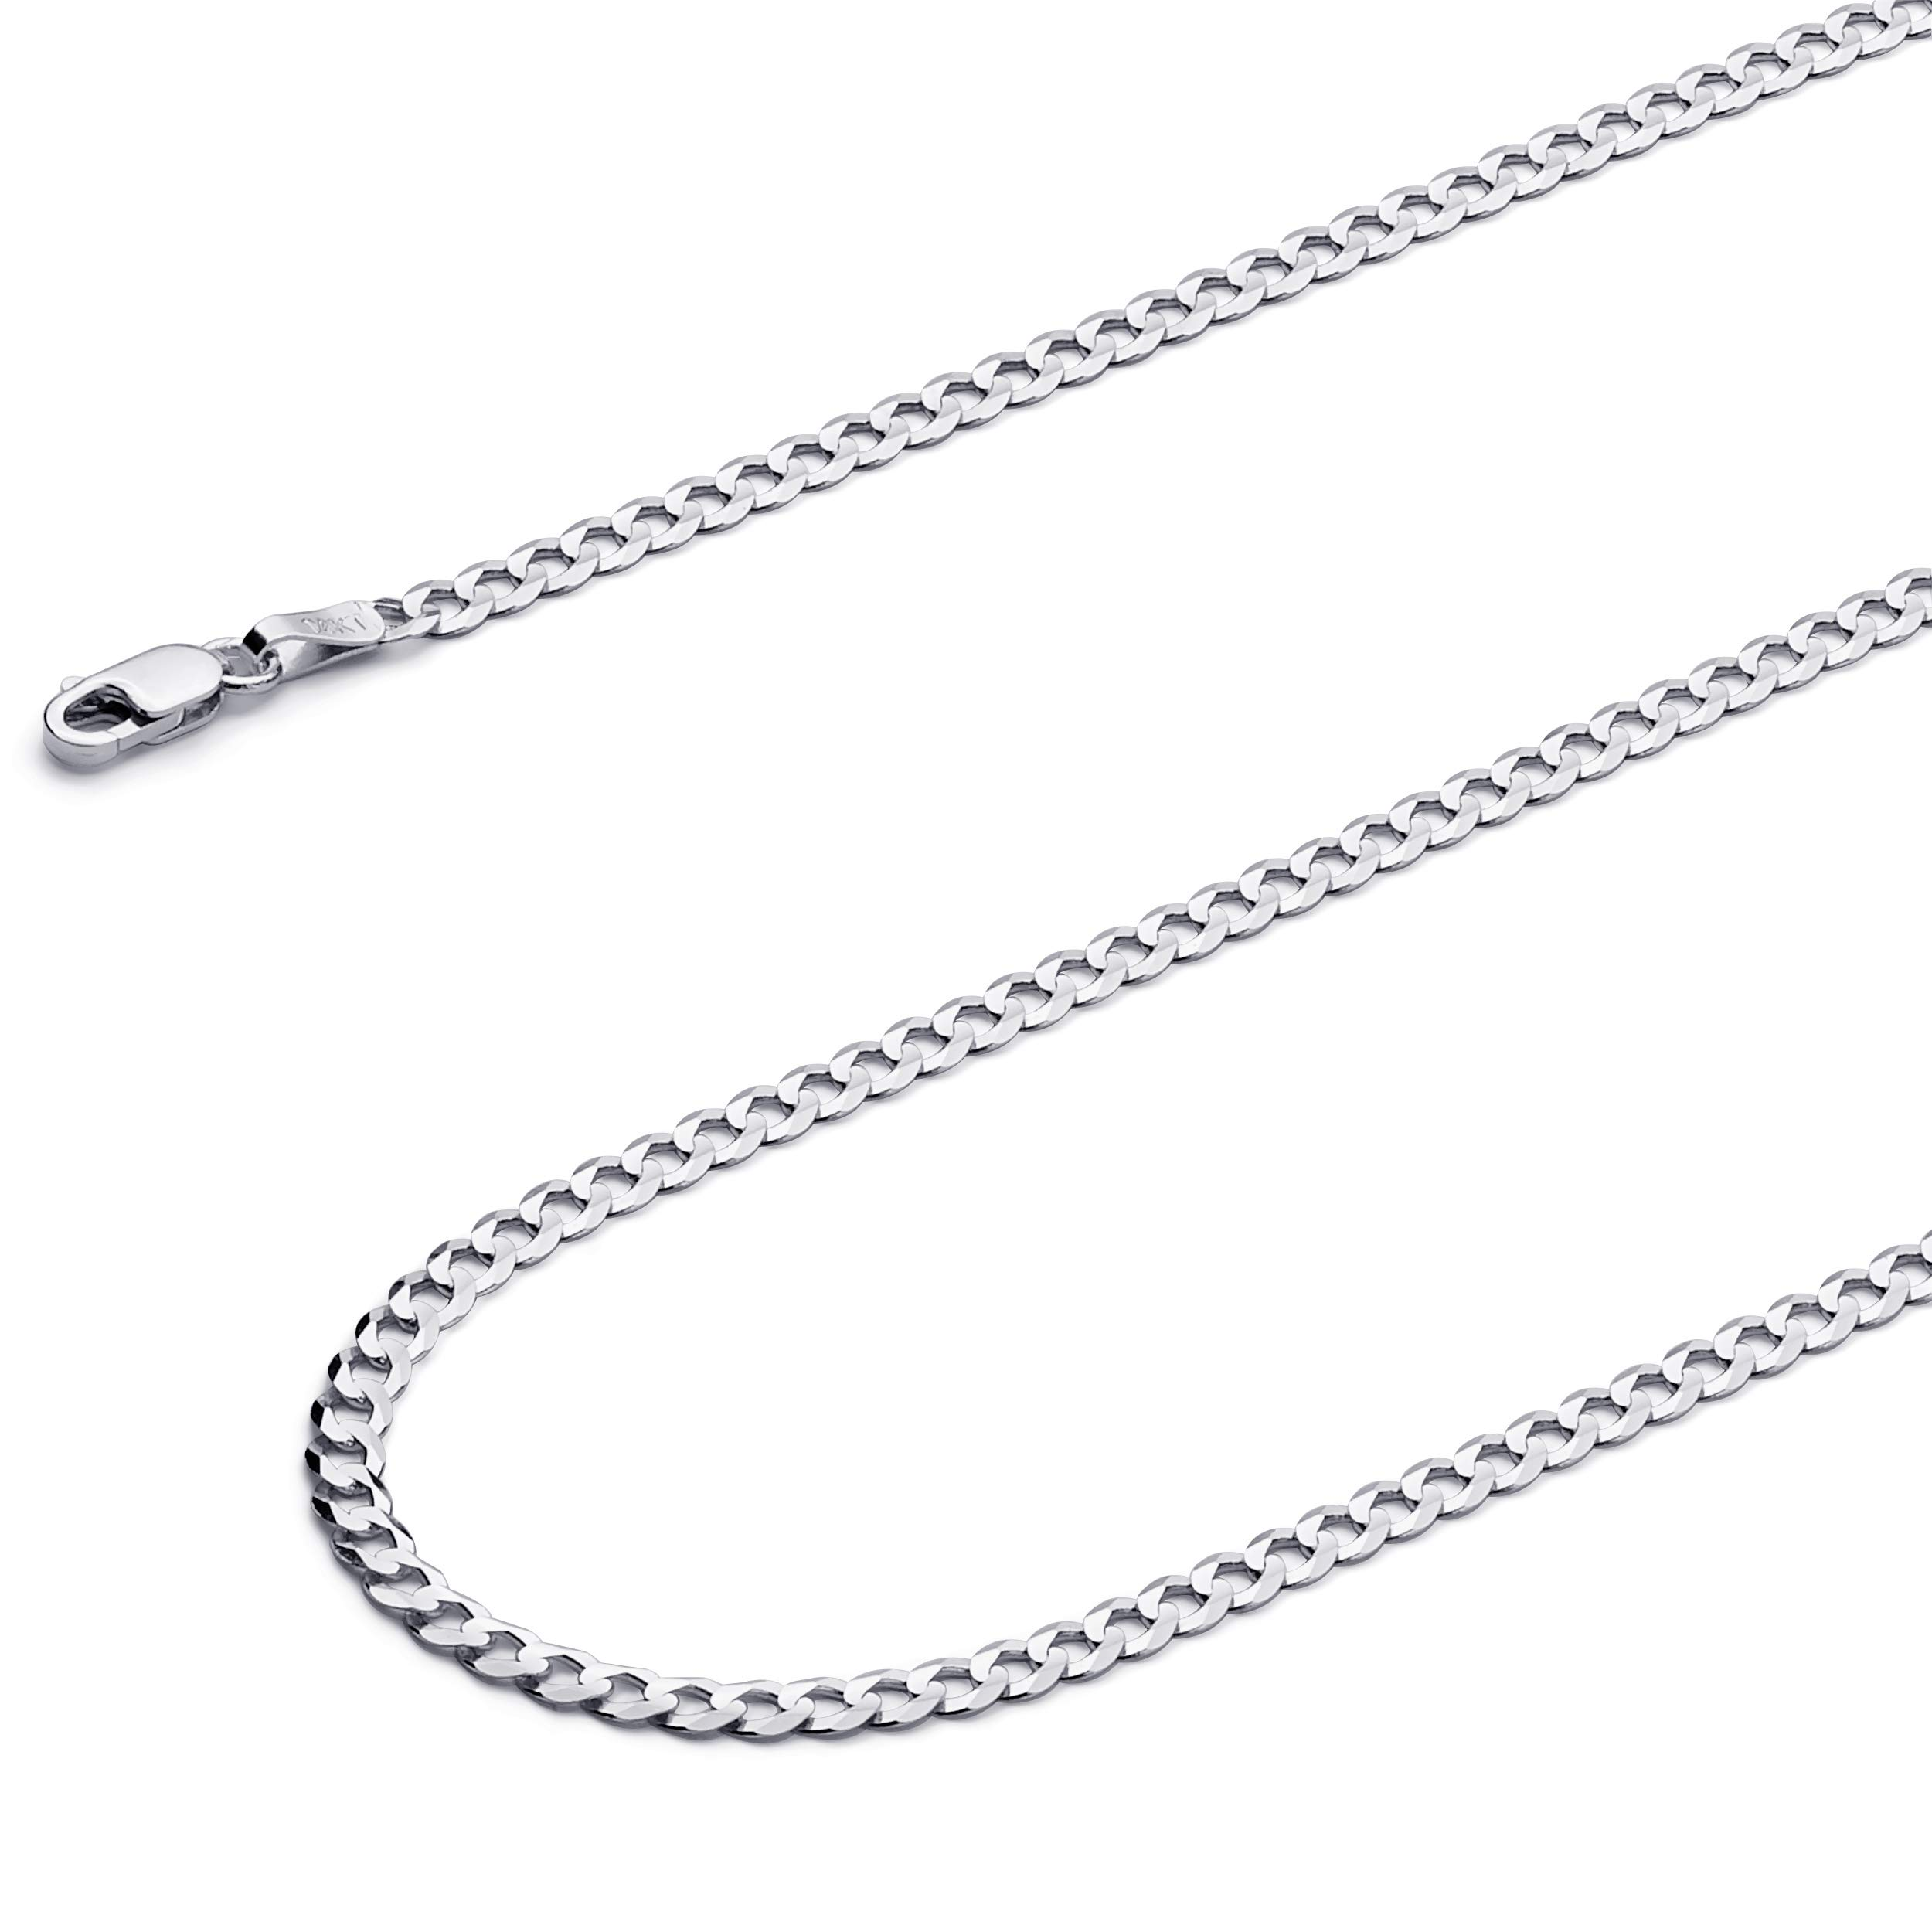 Wellingsale 14k White Gold SOLID 3mm Polished Cuban Concaved Curb Chain Necklace - 18''